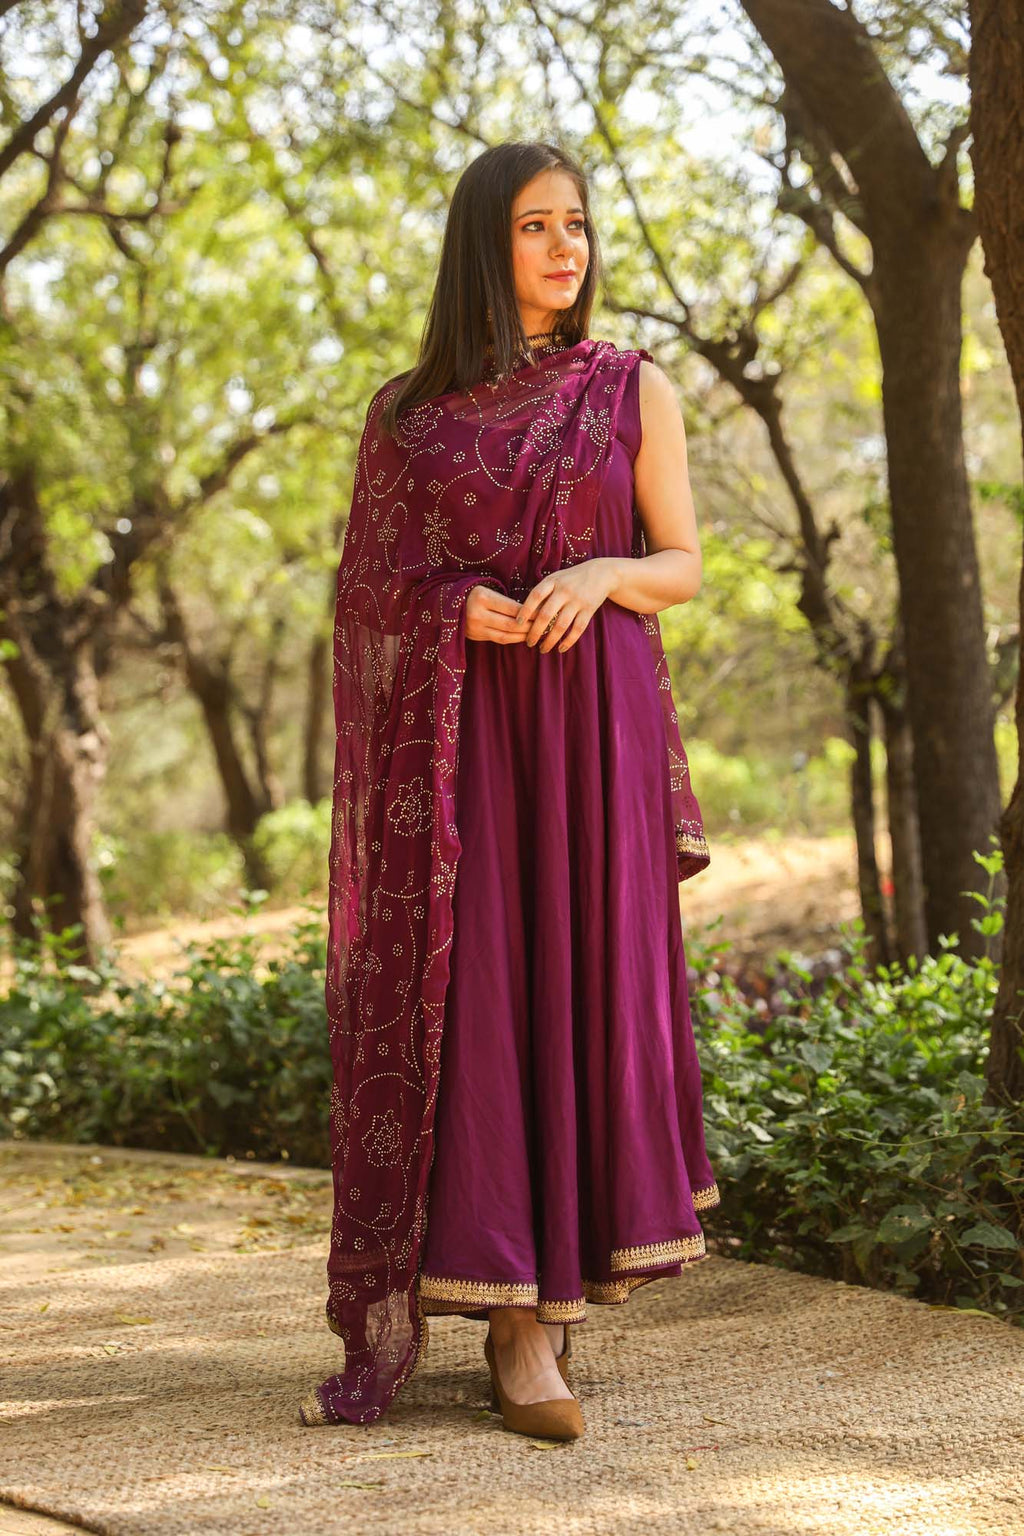 Nafisa Purple Sleeveless Anarkali Suit Set with Gold Lace Details - Riviera Closet